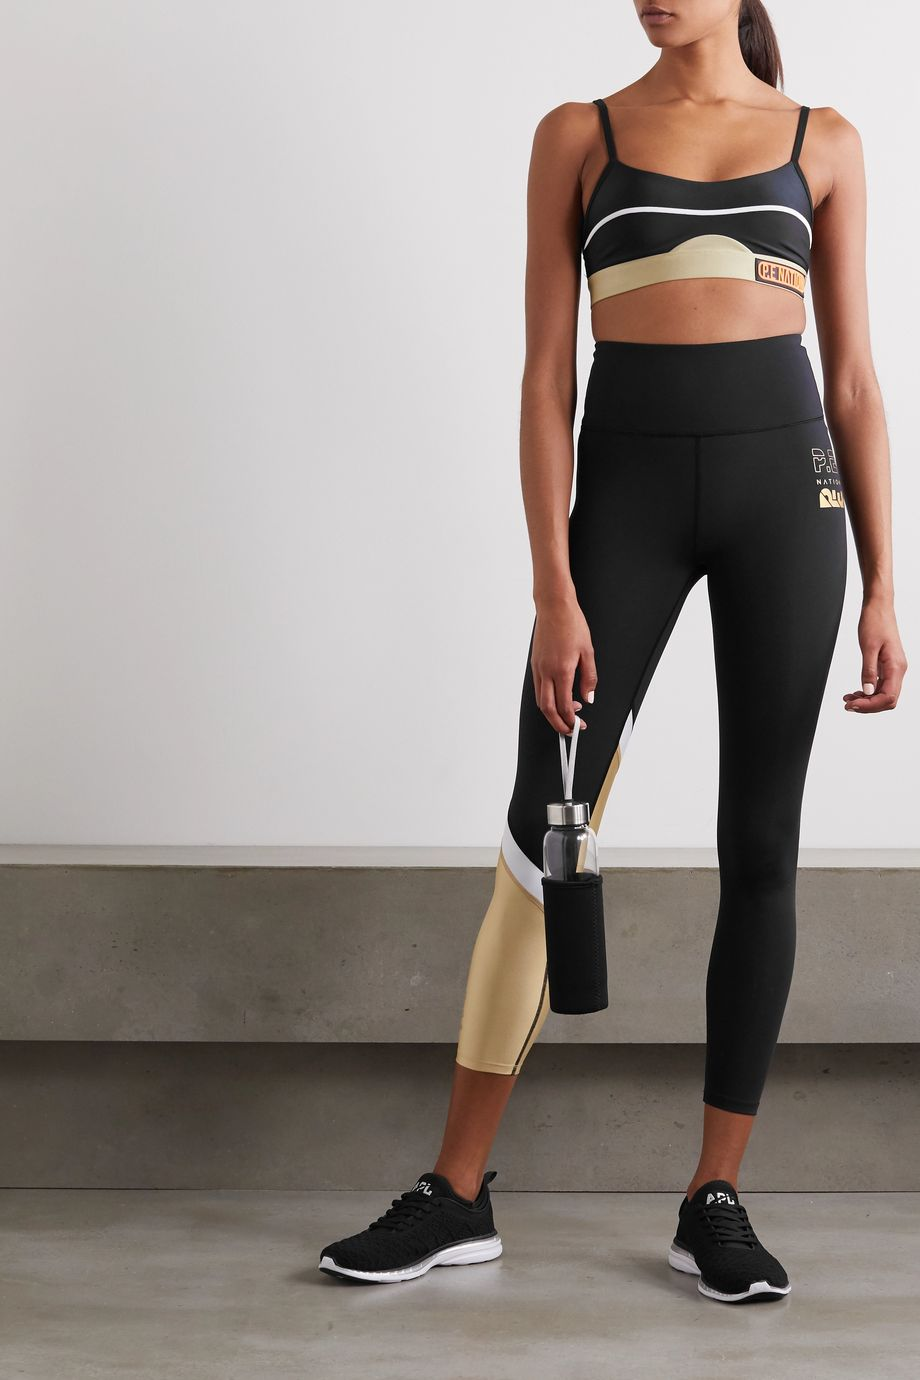 P.E NATION Sidelined paneled metallic stretch leggings